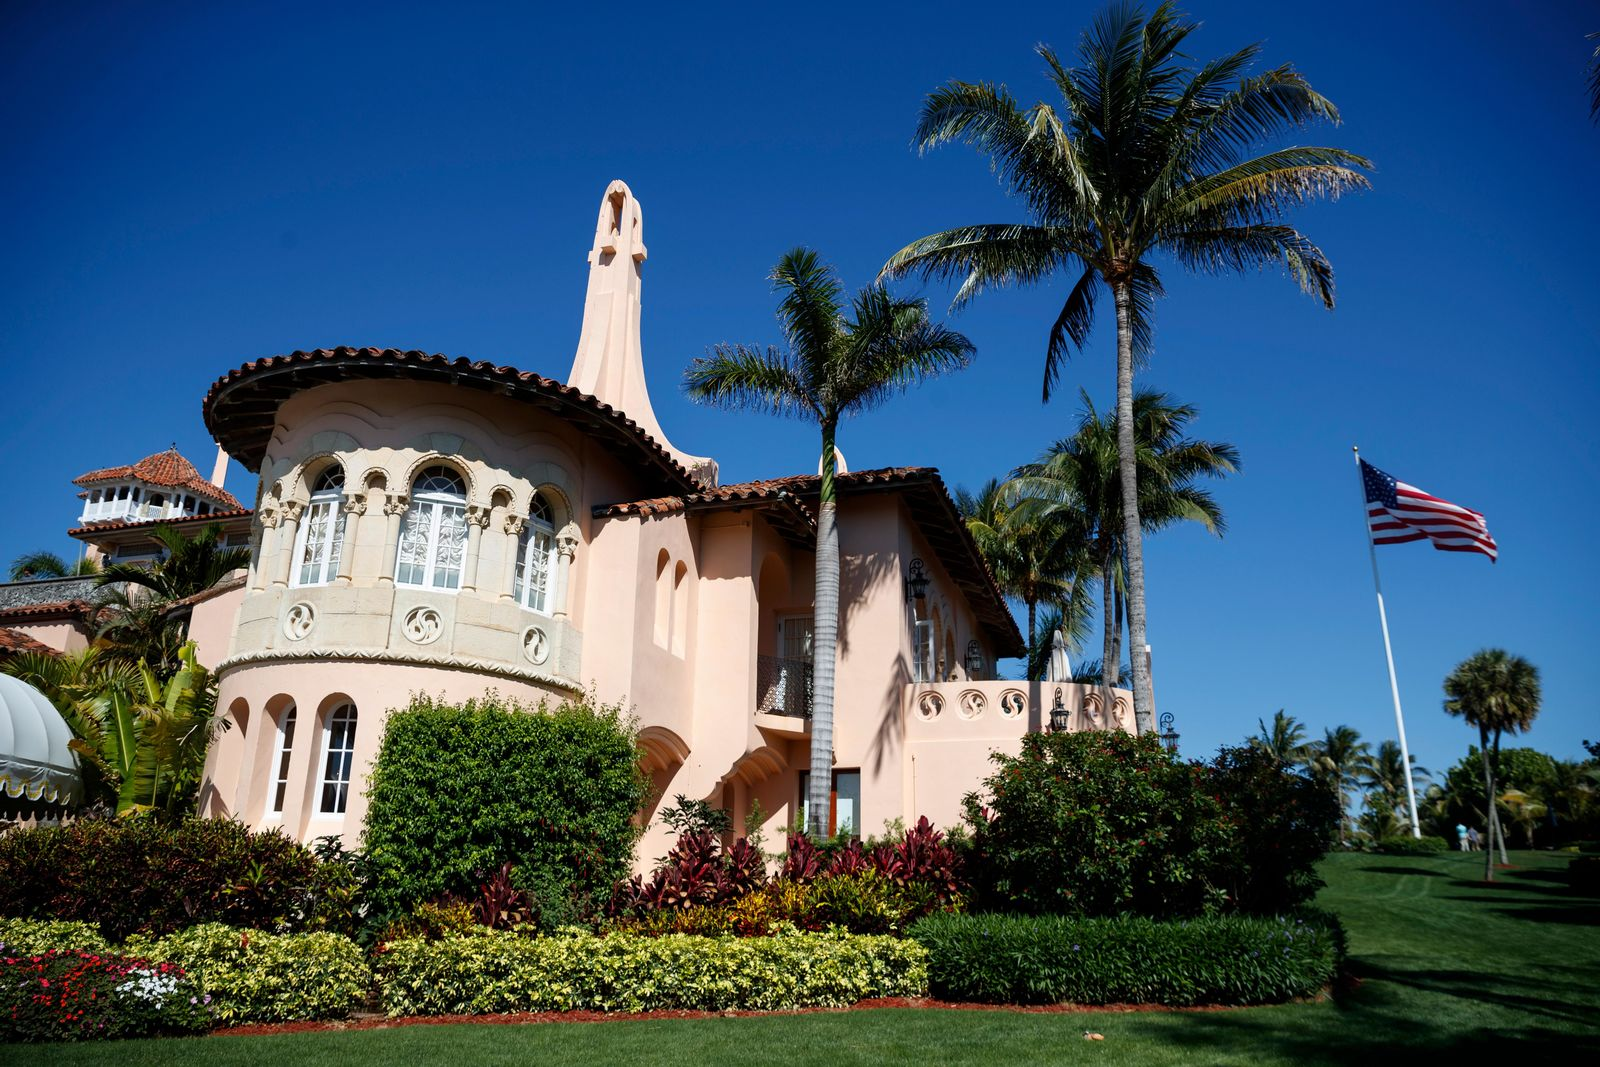 A view of Mar-A Lago on Friday, March 22, 2019, in Palm Beach, Fla., before Caribbean leaders talk to media after meeting with President Donald Trump. (AP Photo/Carolyn Kaster)